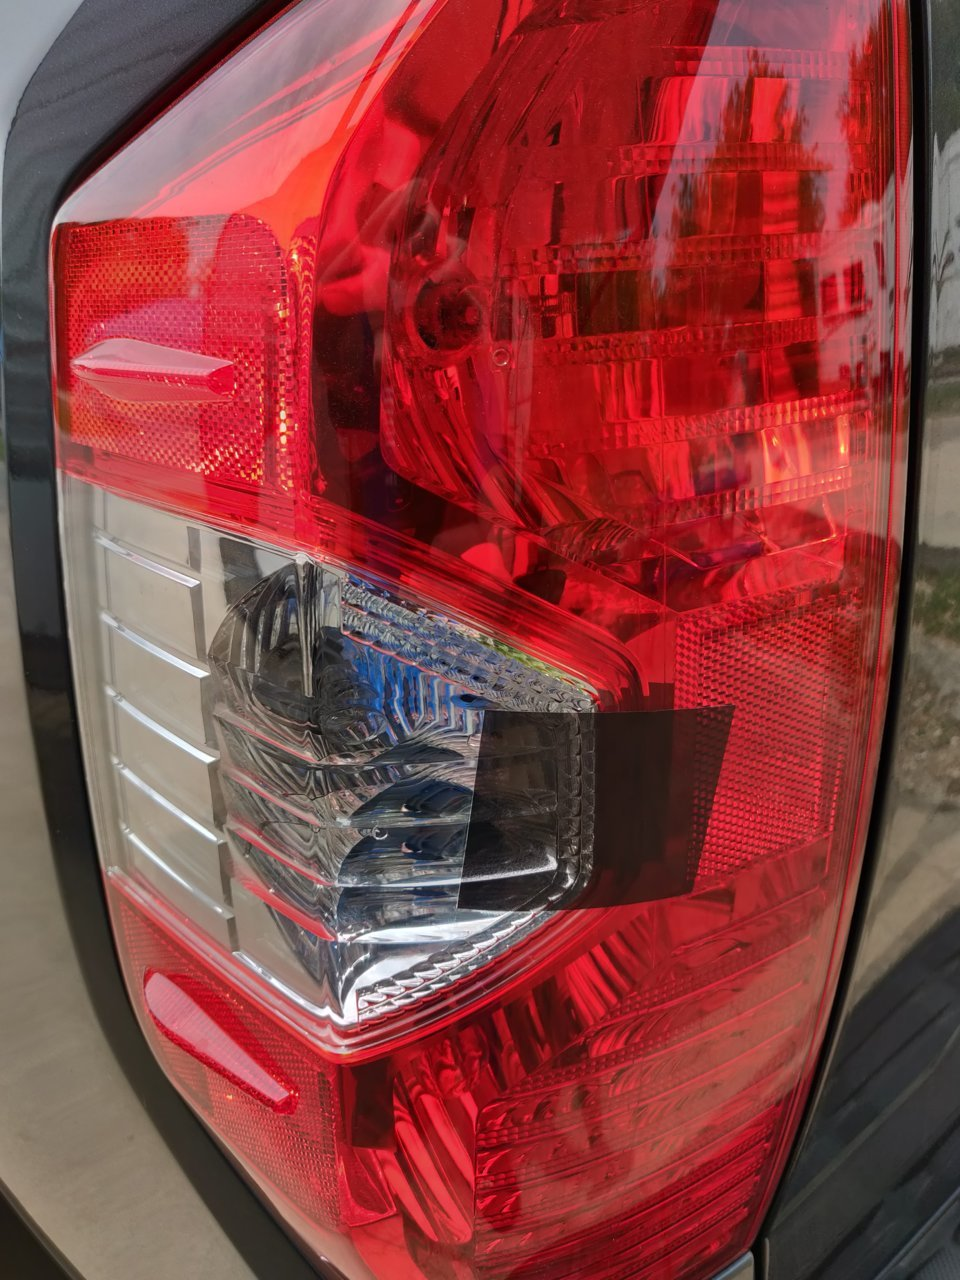 Tail light tint ? Anyone tried anything like this? Results